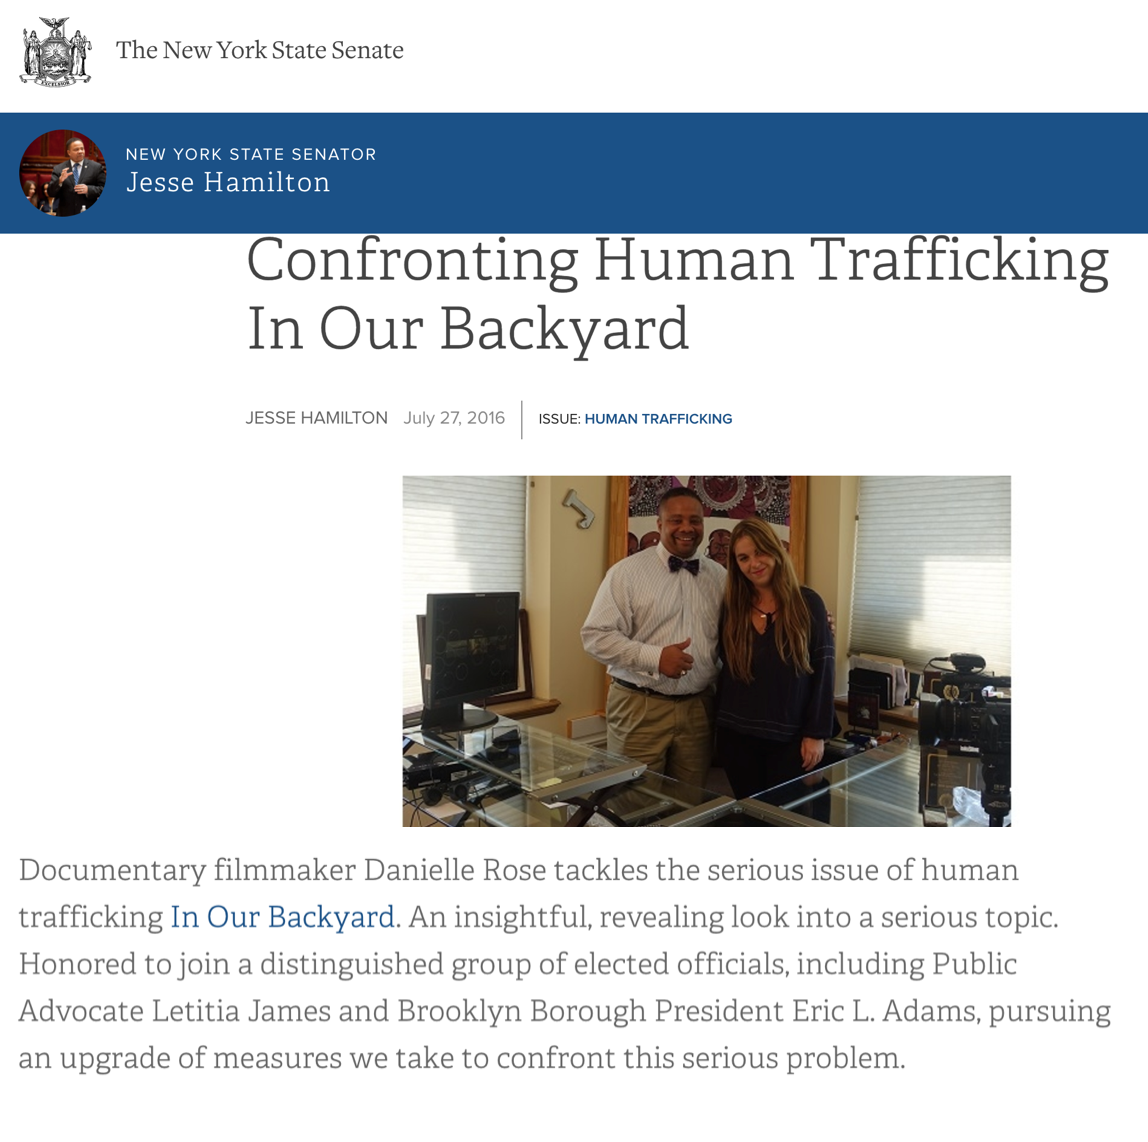 https://www.nysenate.gov/newsroom/articles/jesse-hamilton/confronting-human-trafficking-our-backyard